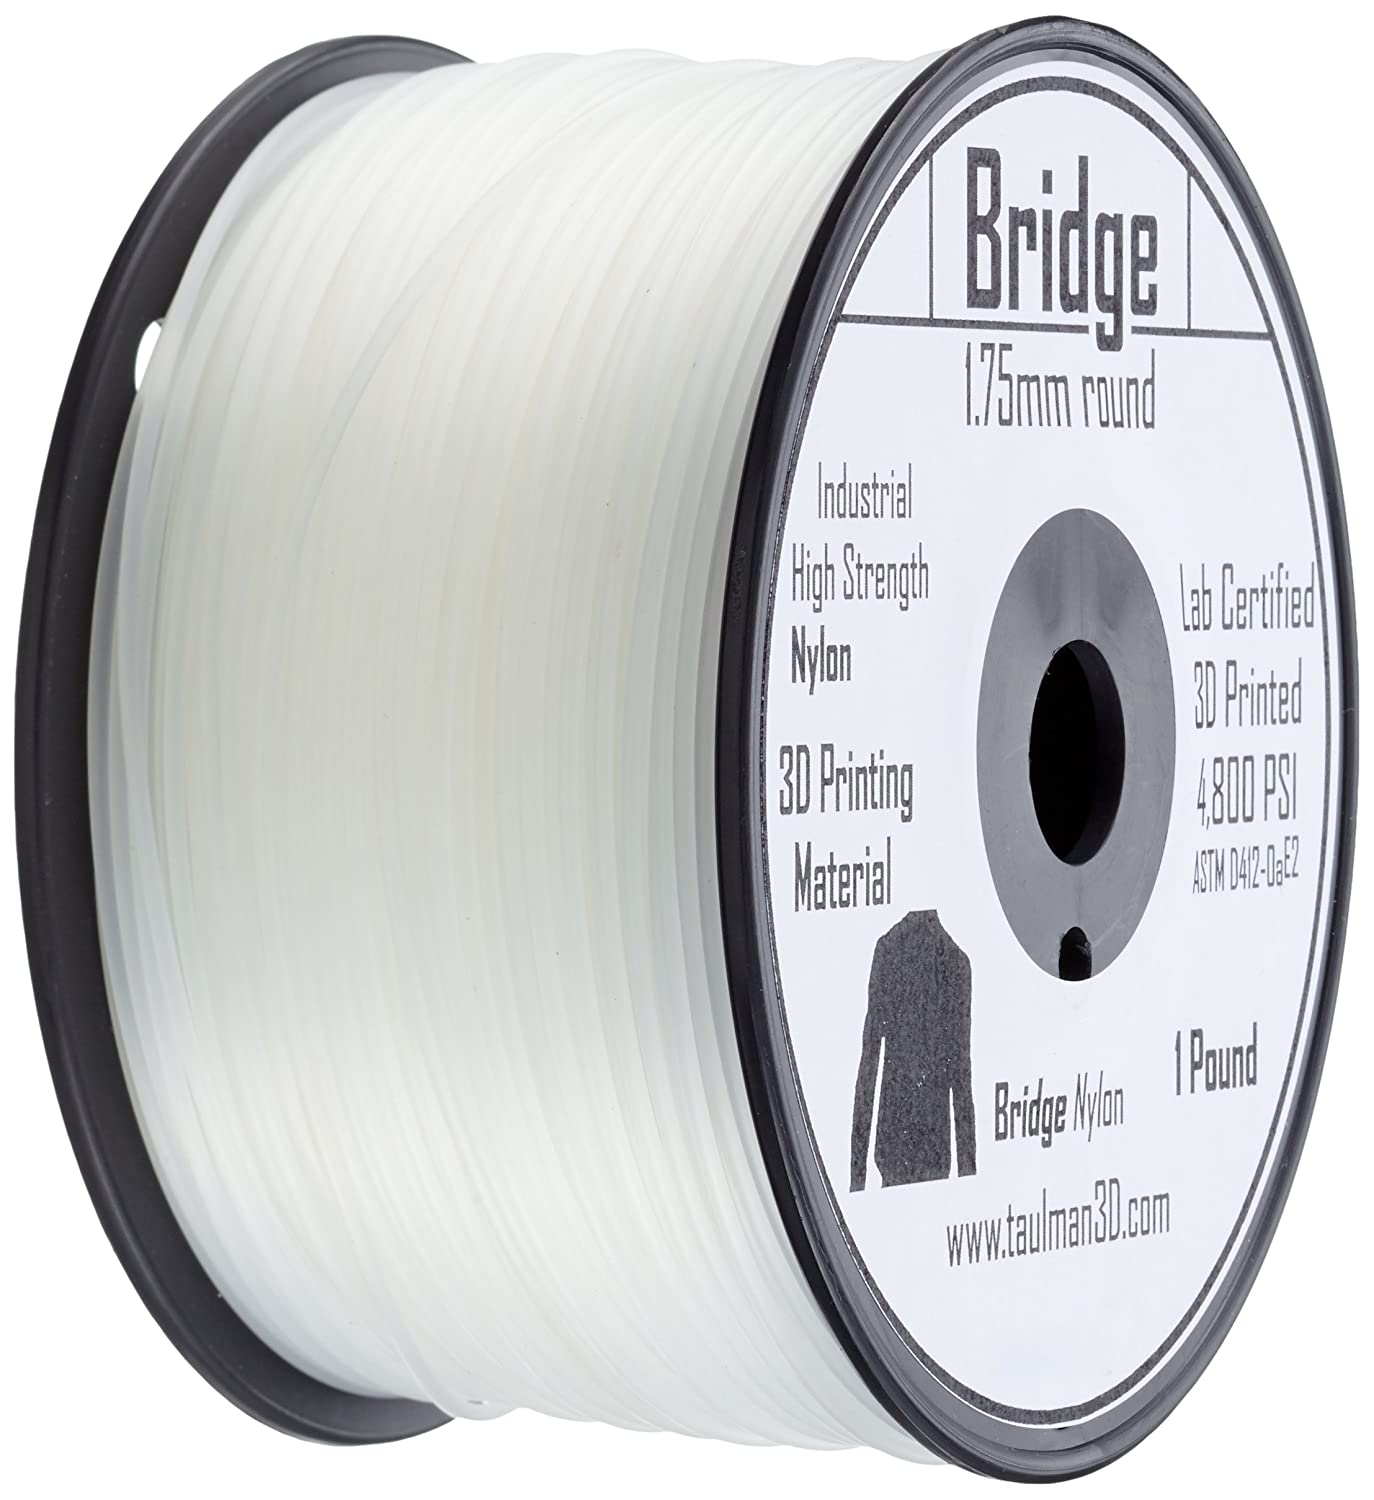 3D Prima 10158 Taulman Print Filament, Bridge Nylon, 1.75 mm Taulman3D